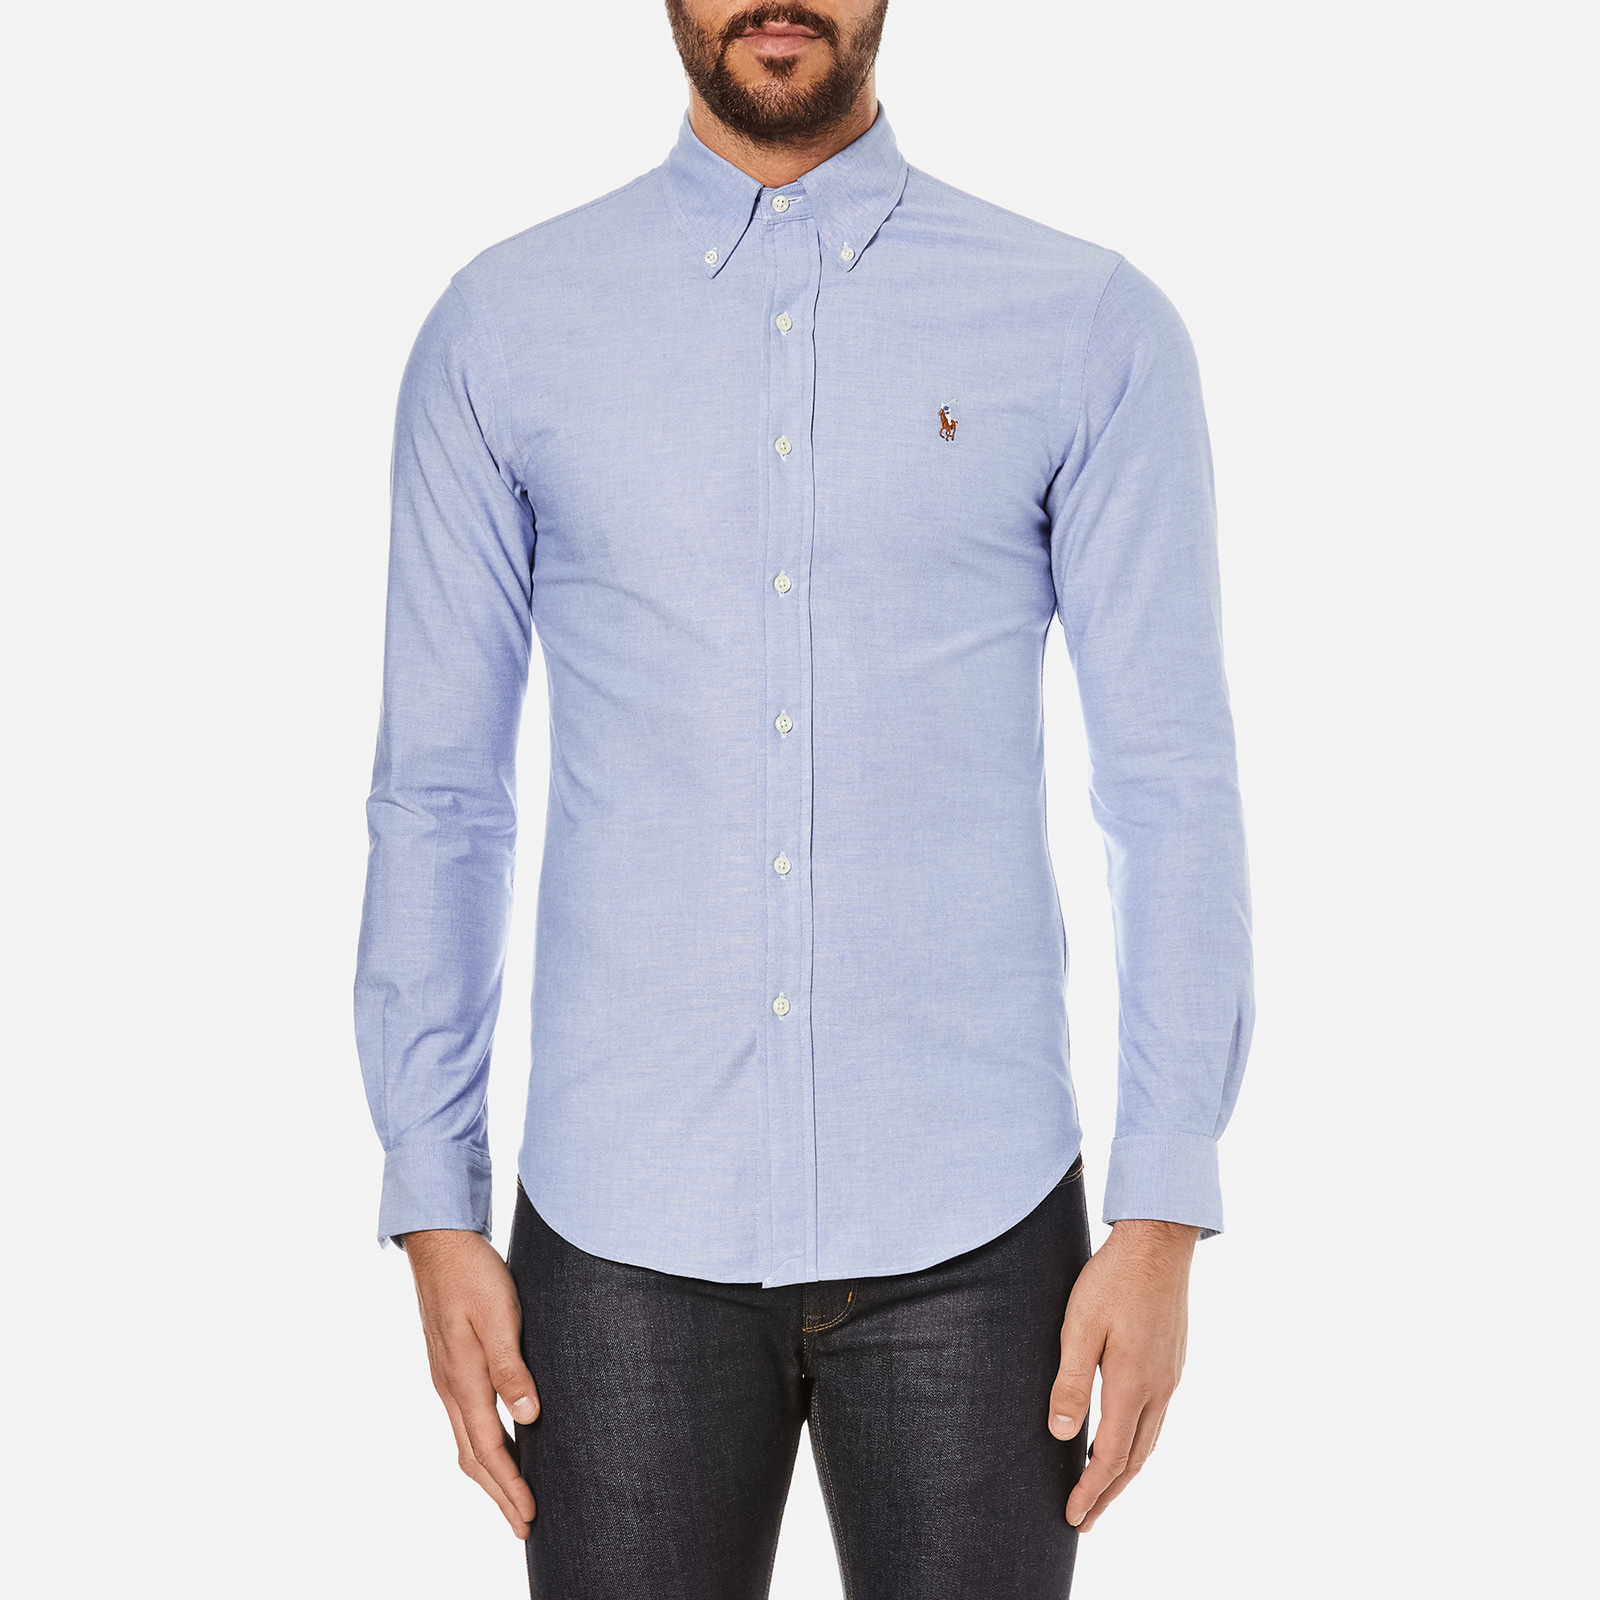 10b46d1fa79c Polo Ralph Lauren Men s Slim Fit Button Down Stretch Oxford Shirt - Blue -  Free UK Delivery over £50